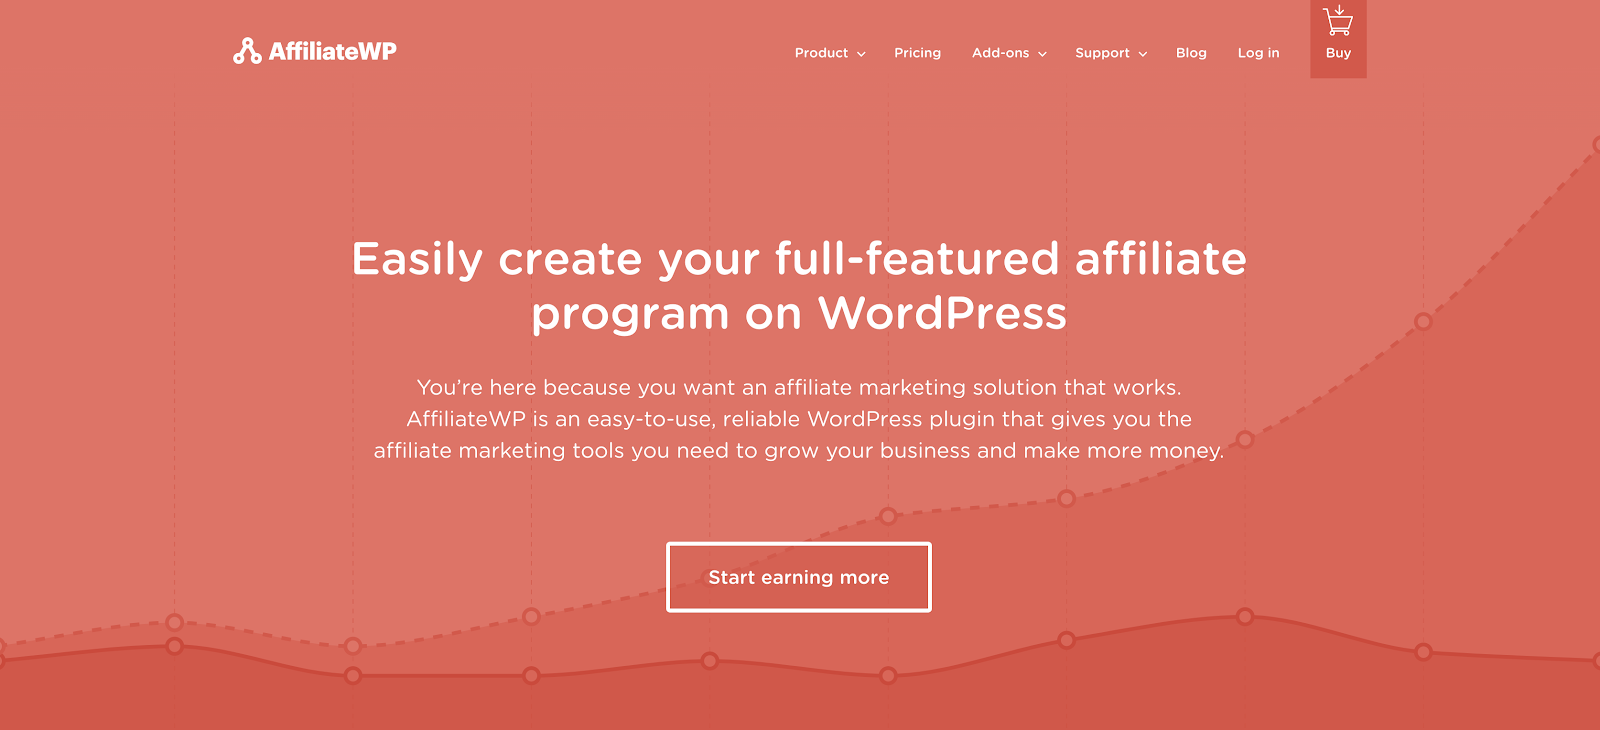 AffiliateWP - Best WordPress Plugins Every Affiliate Marketer Needs